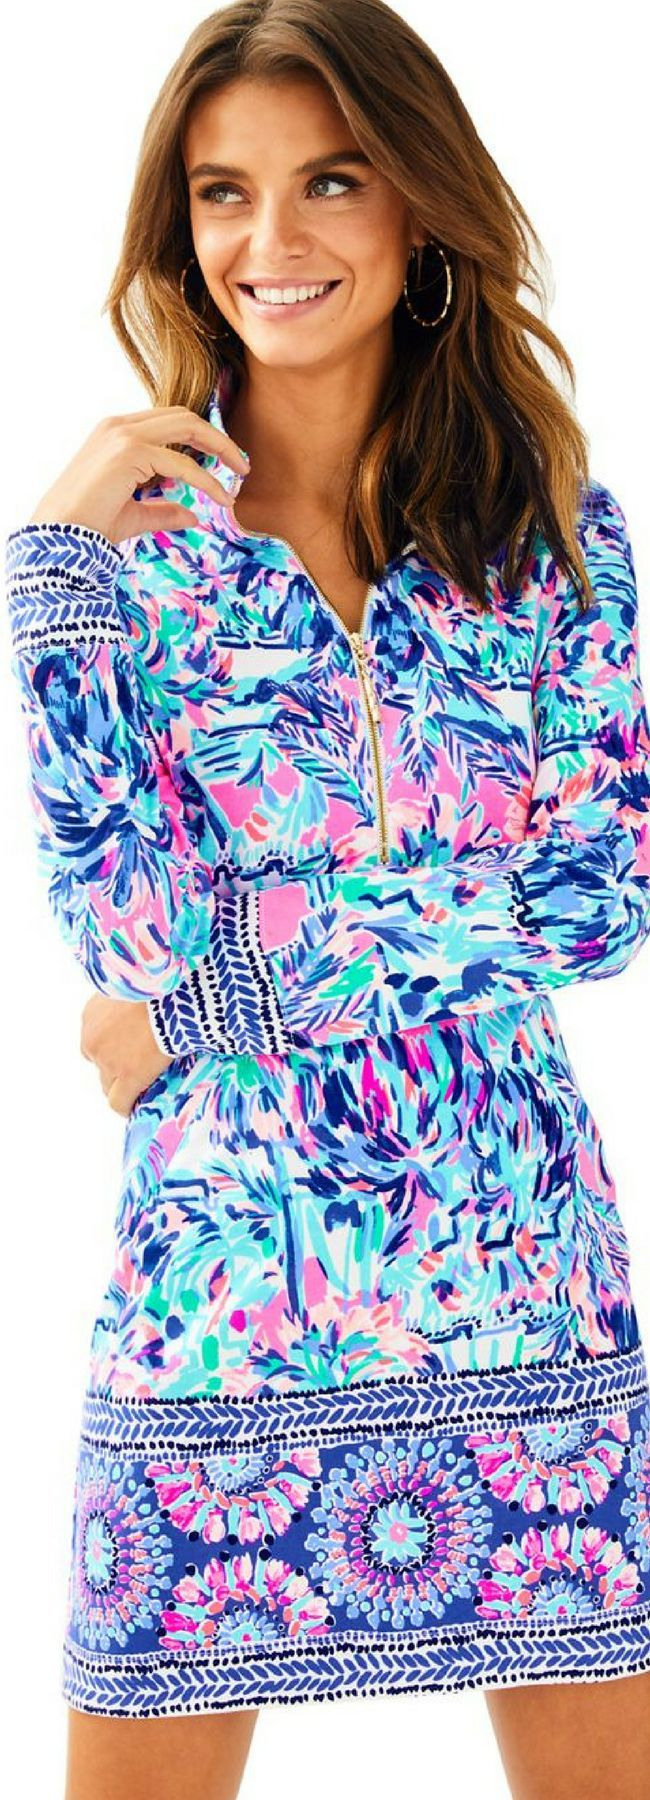 99007e63676 The Lilly Pulitzer Cabana Cocktail print has been engineered specially for  the Skipper Dress. A patterned band lines the hem of this sporty chic  masterpiece ...